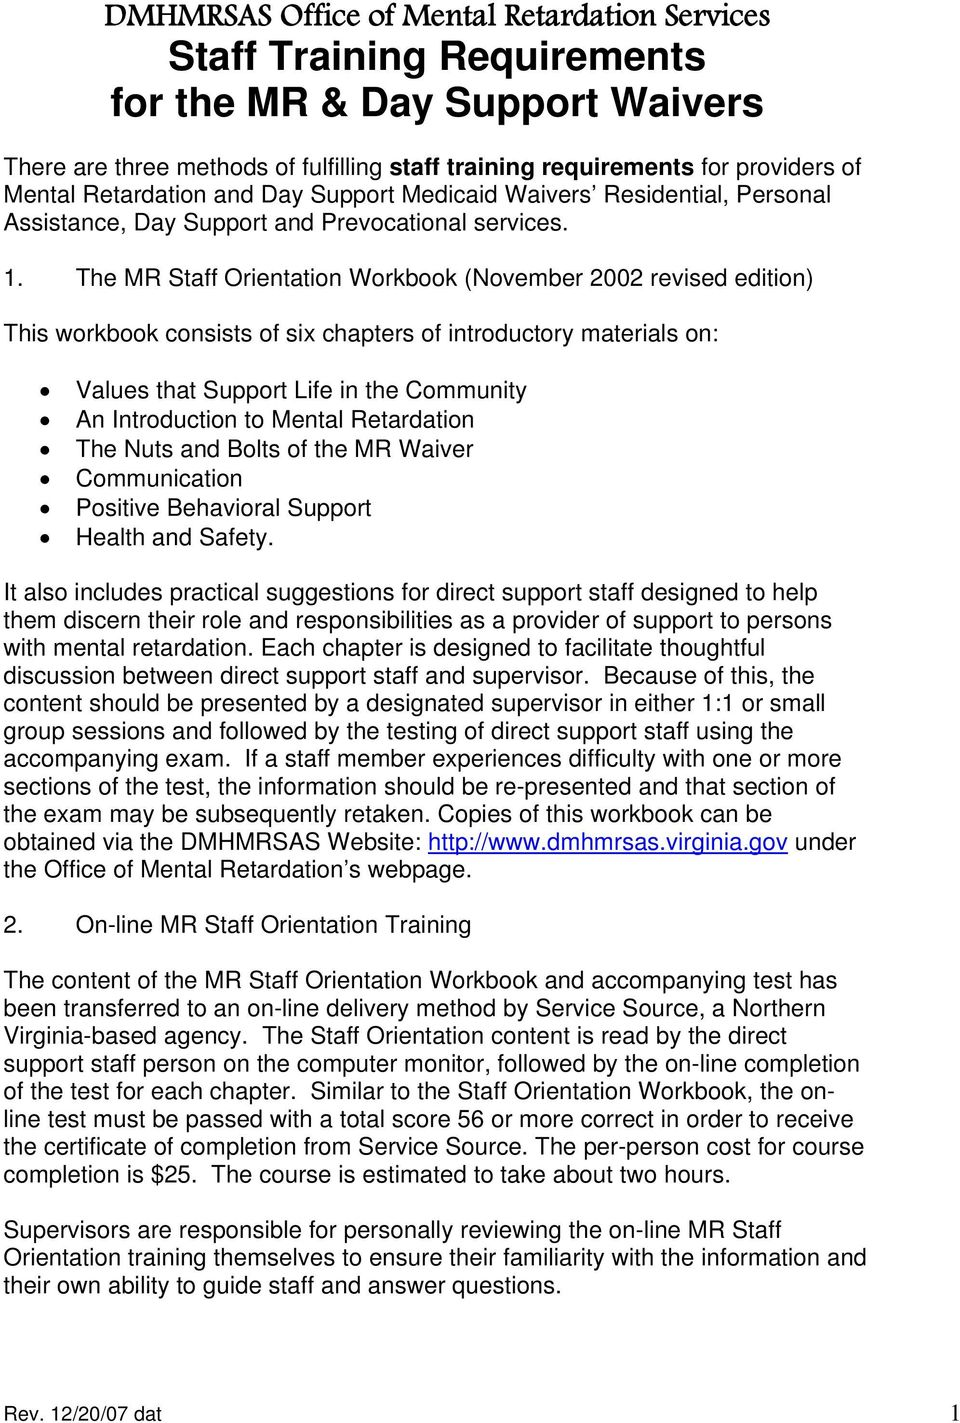 Staff Training Requirements for the MR & Day Support Waivers